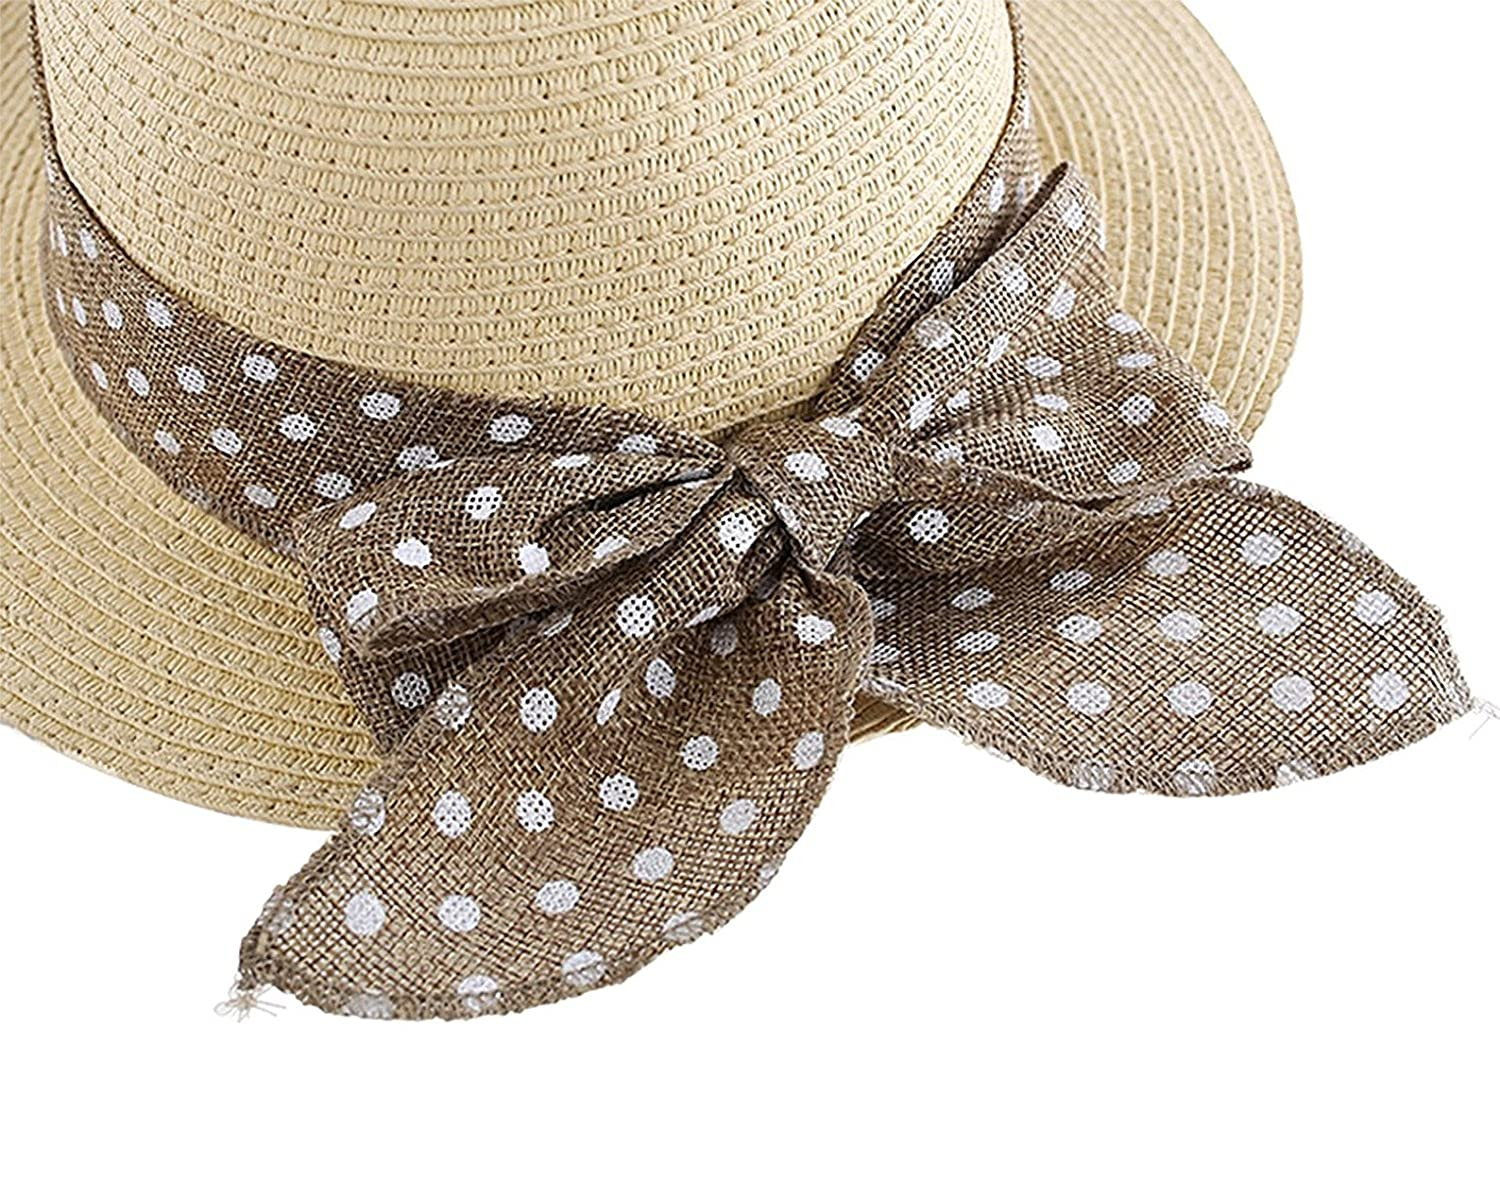 Magracy Baby Girls Straw Hat Sun Protection Hats Summer Bowknot Beach Cap for Kids